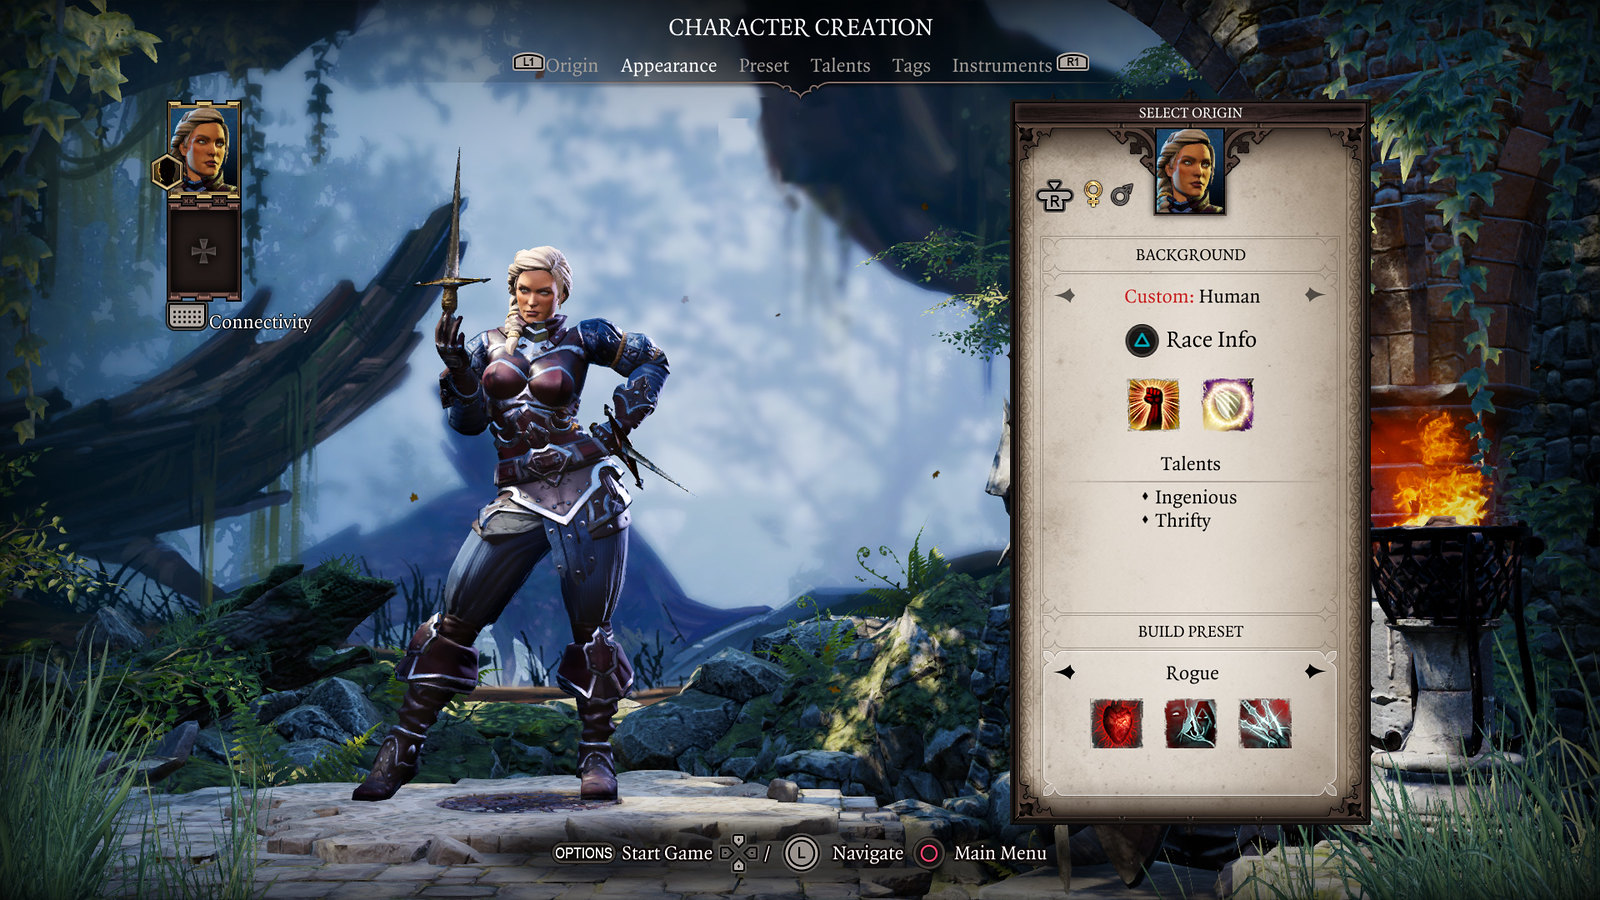 PS4 RPG Divinity: Original Sin 2 gets free in-game gift bags